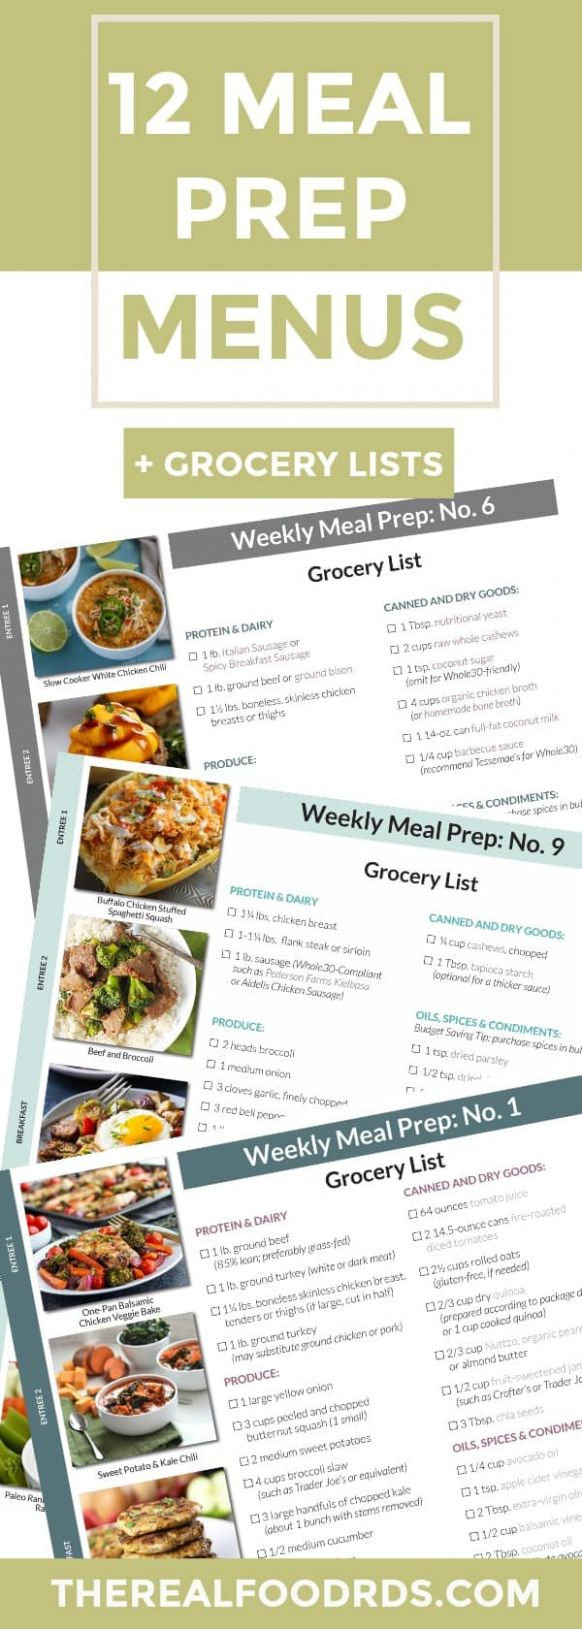 11 Meal Prep Menus + Grocery Lists - The Real Food Dietitians - Meal Prep Recipes For Weight Loss Grocery List